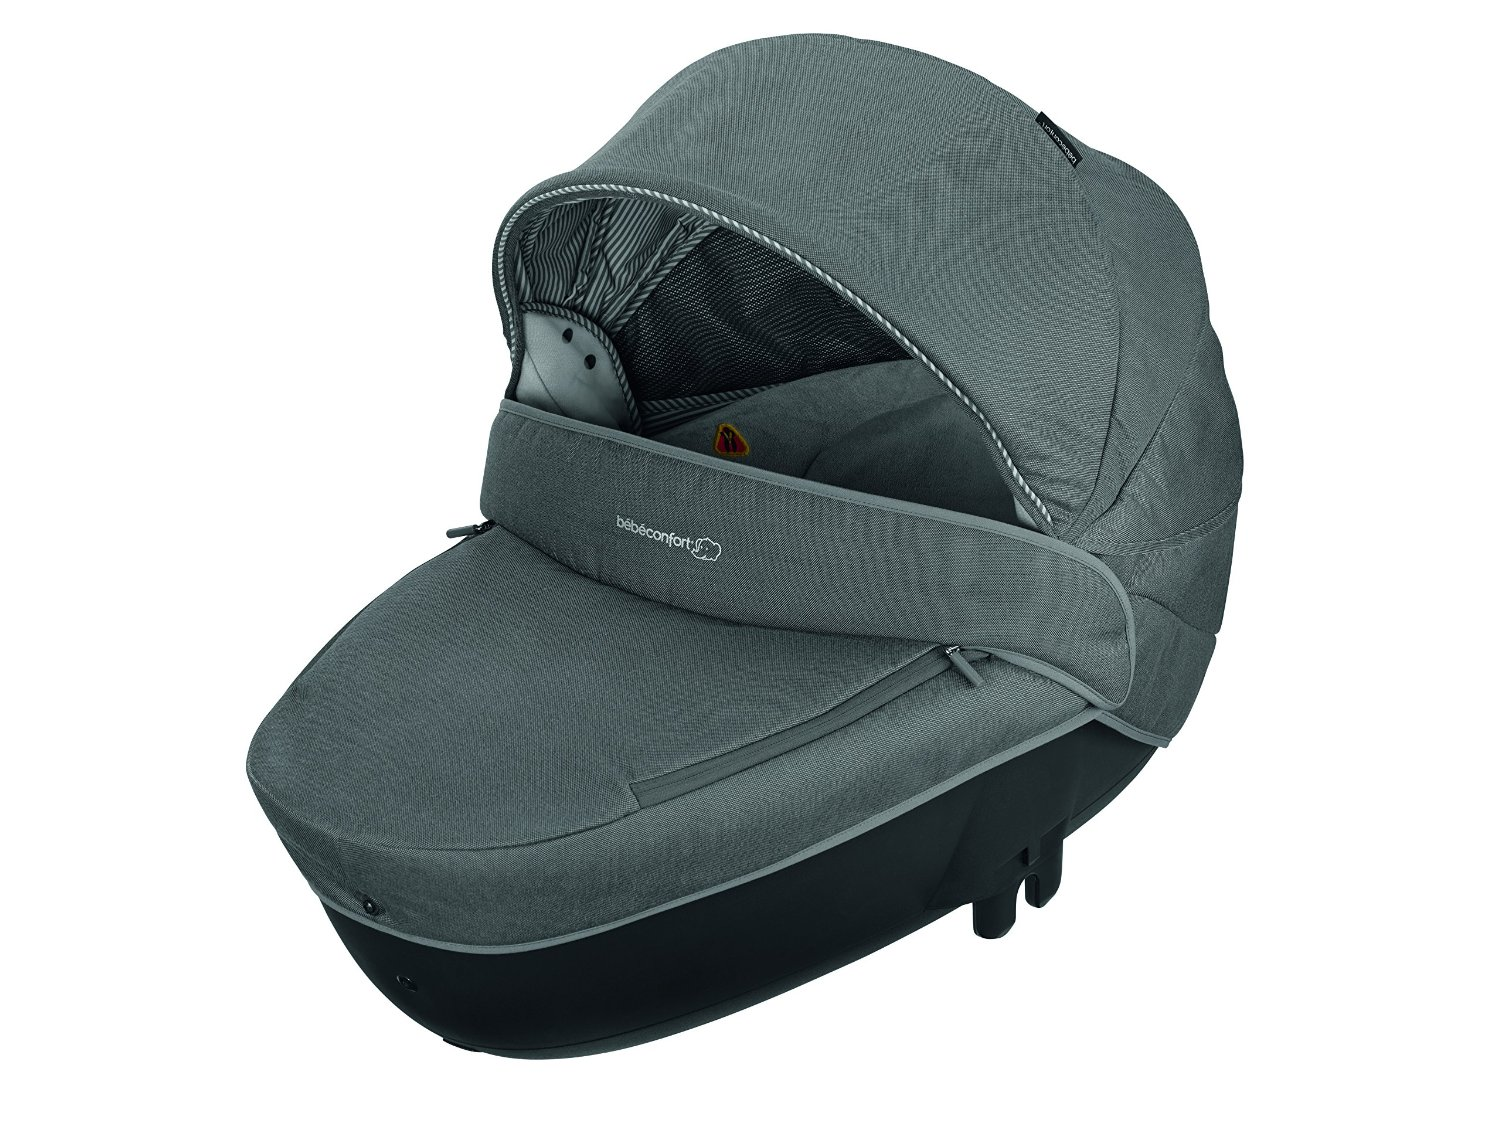 bebe Confort Nacelle Windoo Plus Concrete Grey Collection 2016